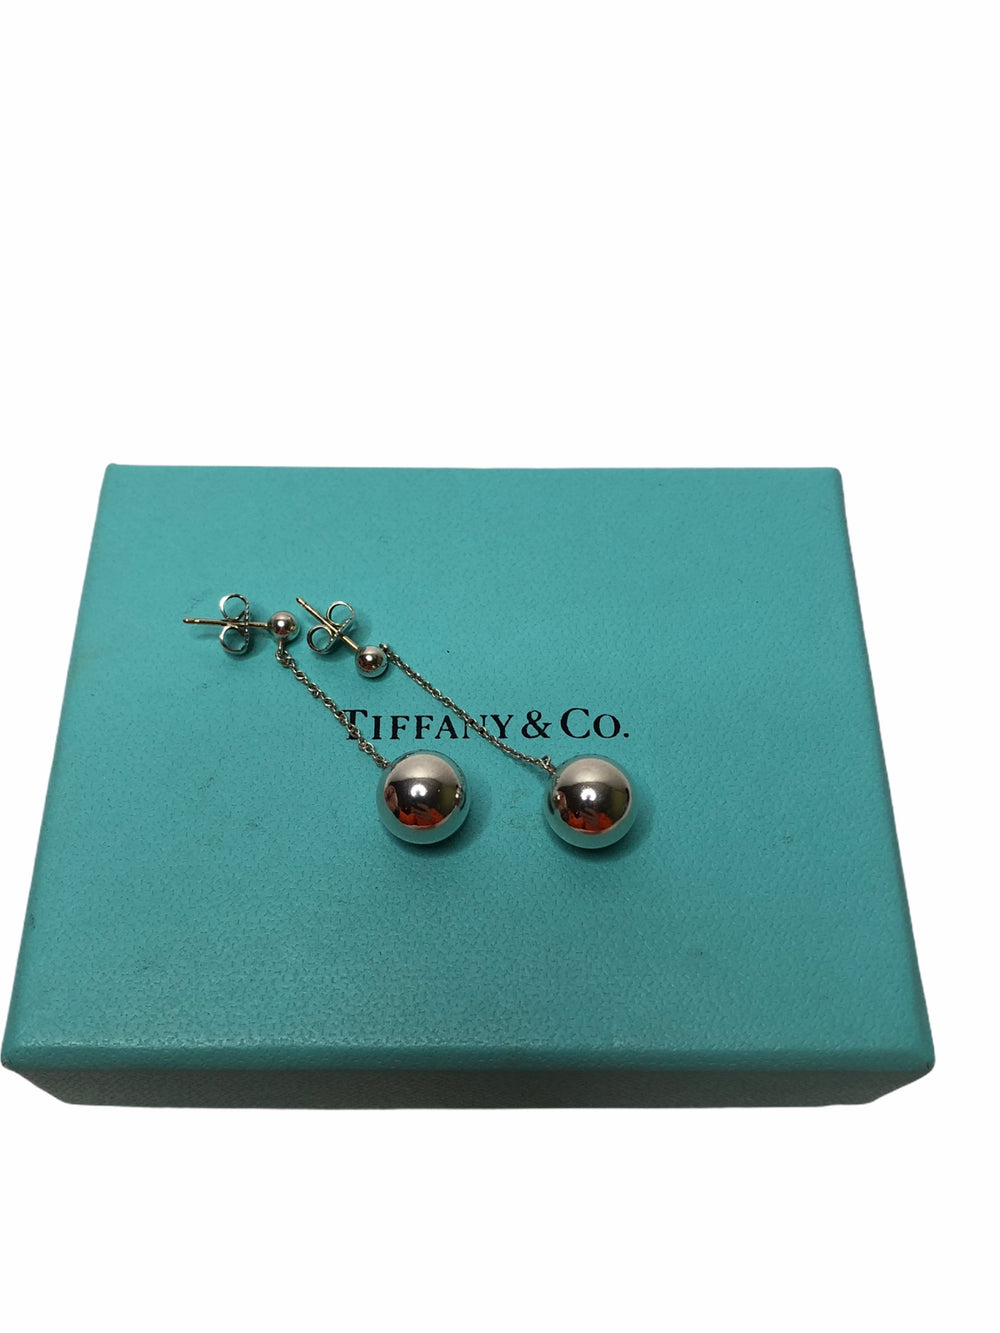 Tiffany & Co Sterling Silver Bauble Drop Earrings